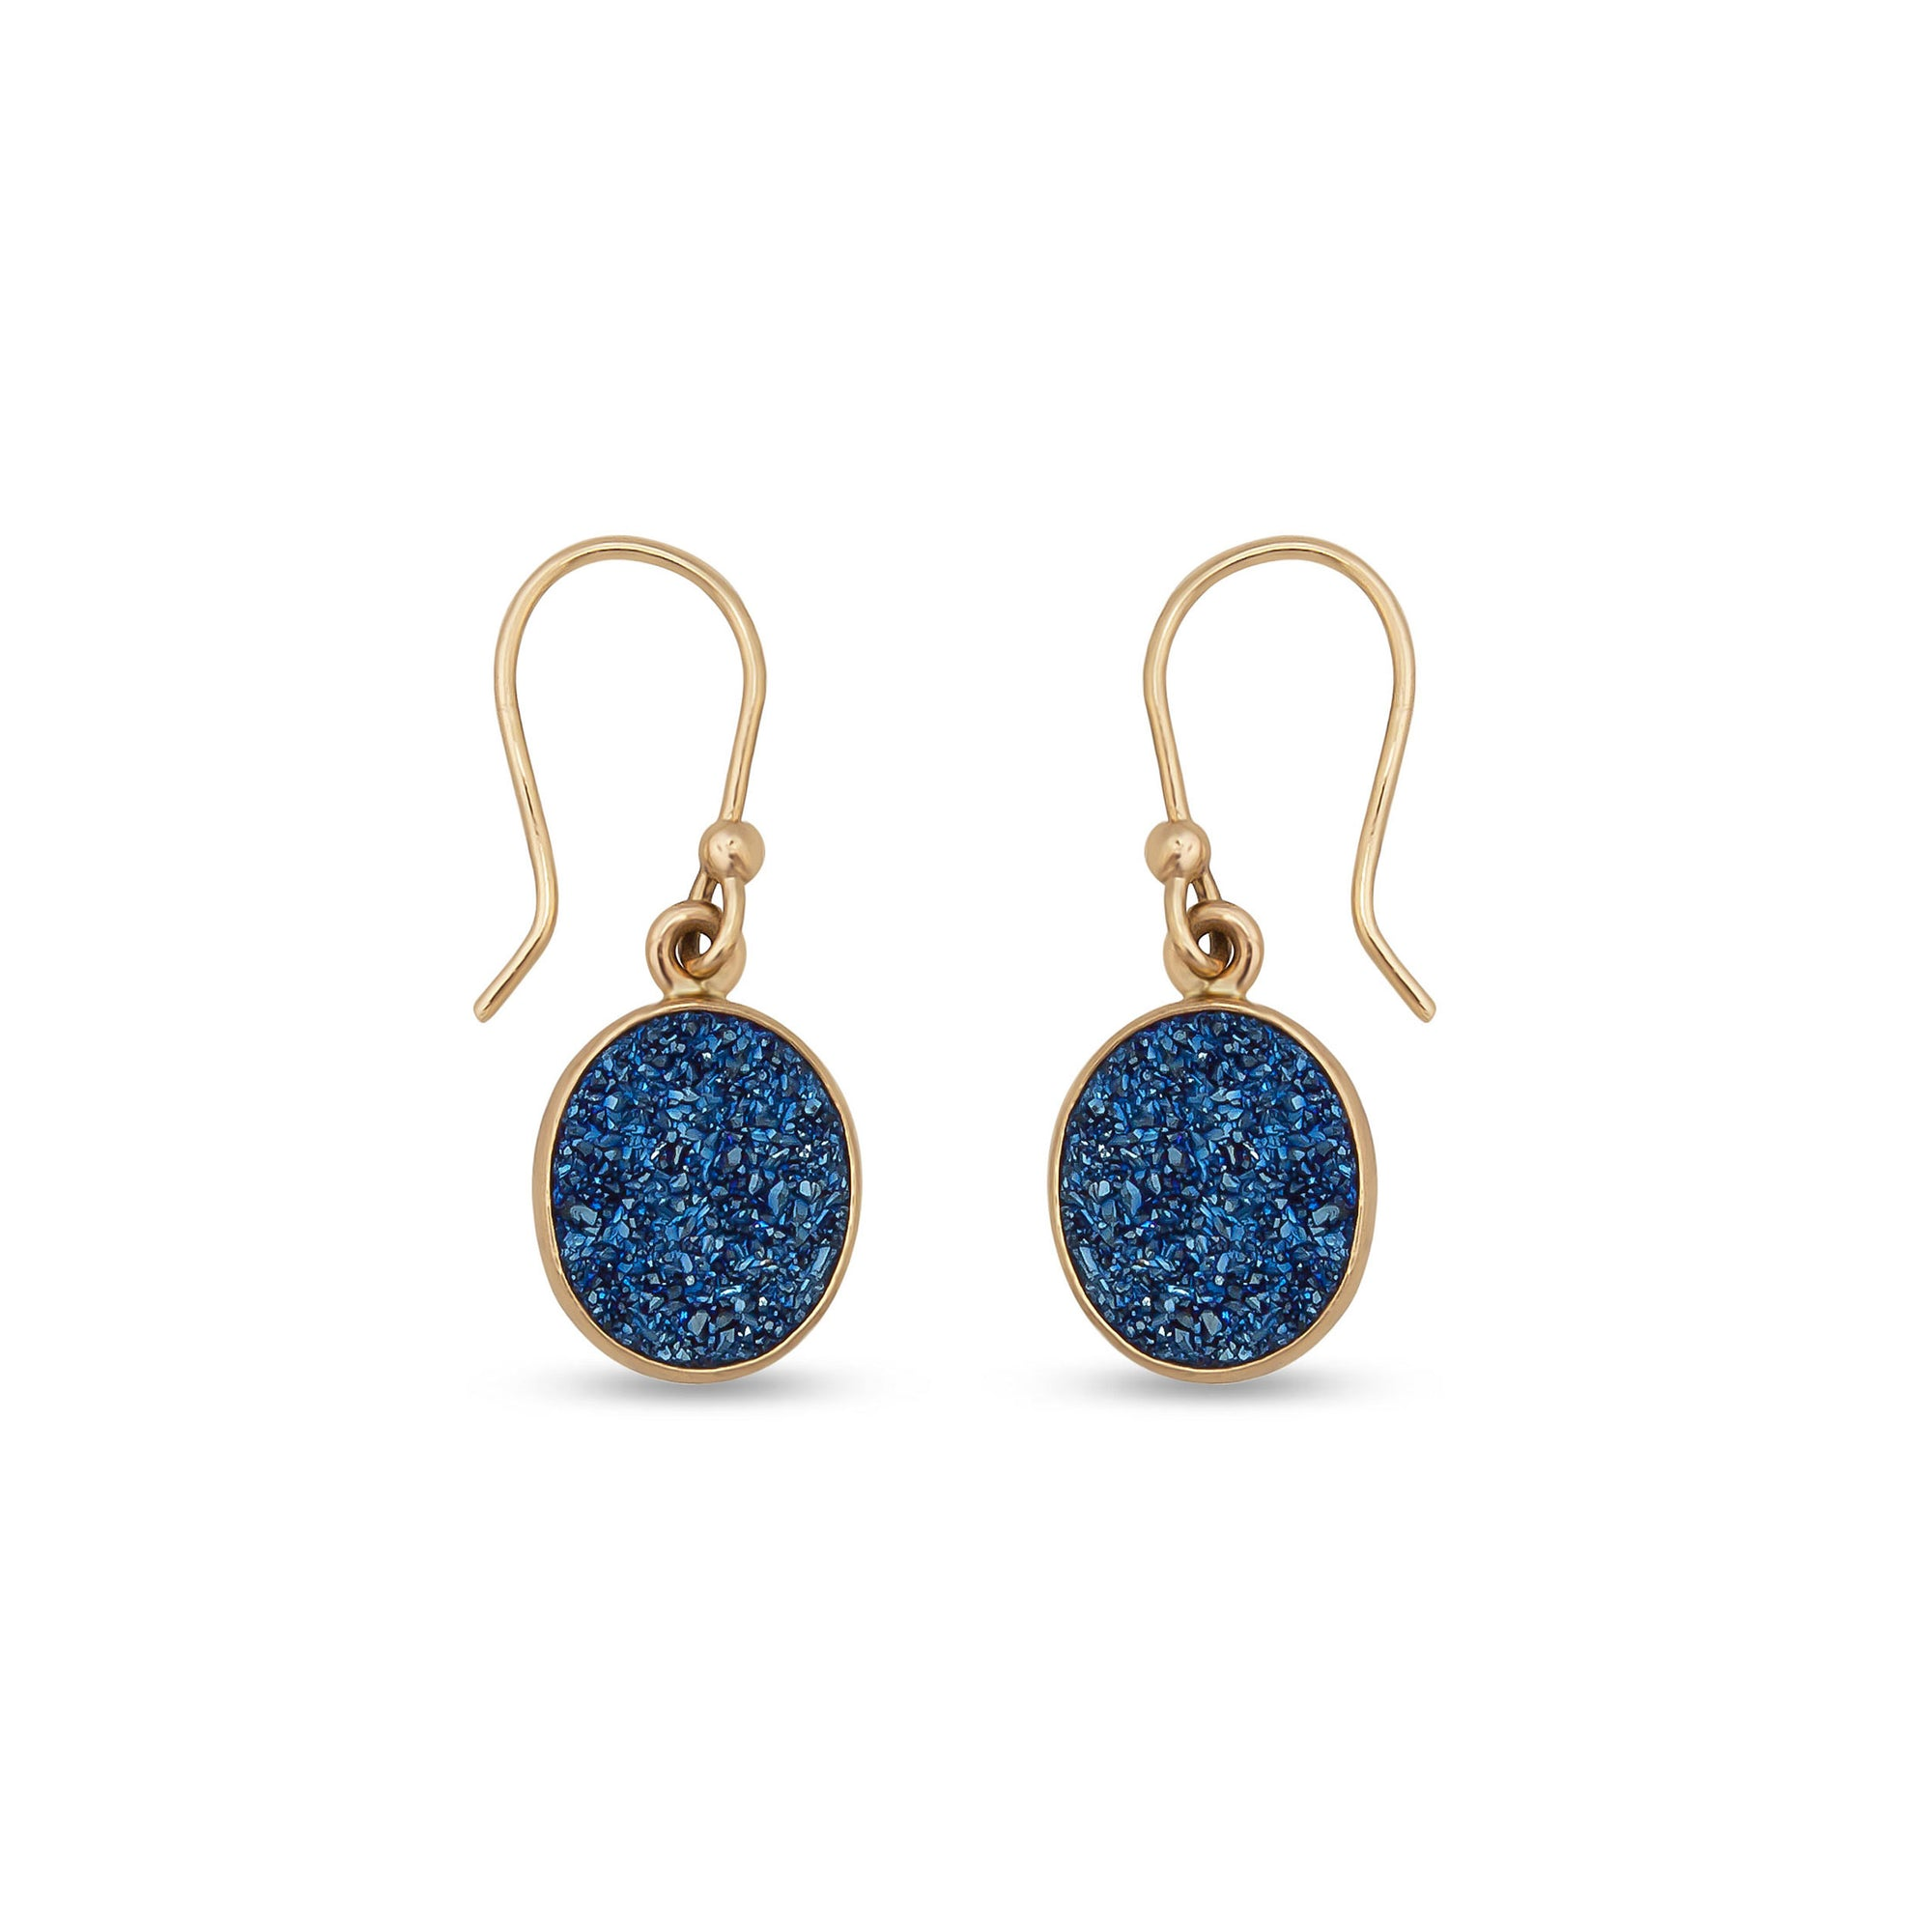 Alchemia-Blue-Druse-Oval-Drop-Earrings-1-Charles Albert Inc